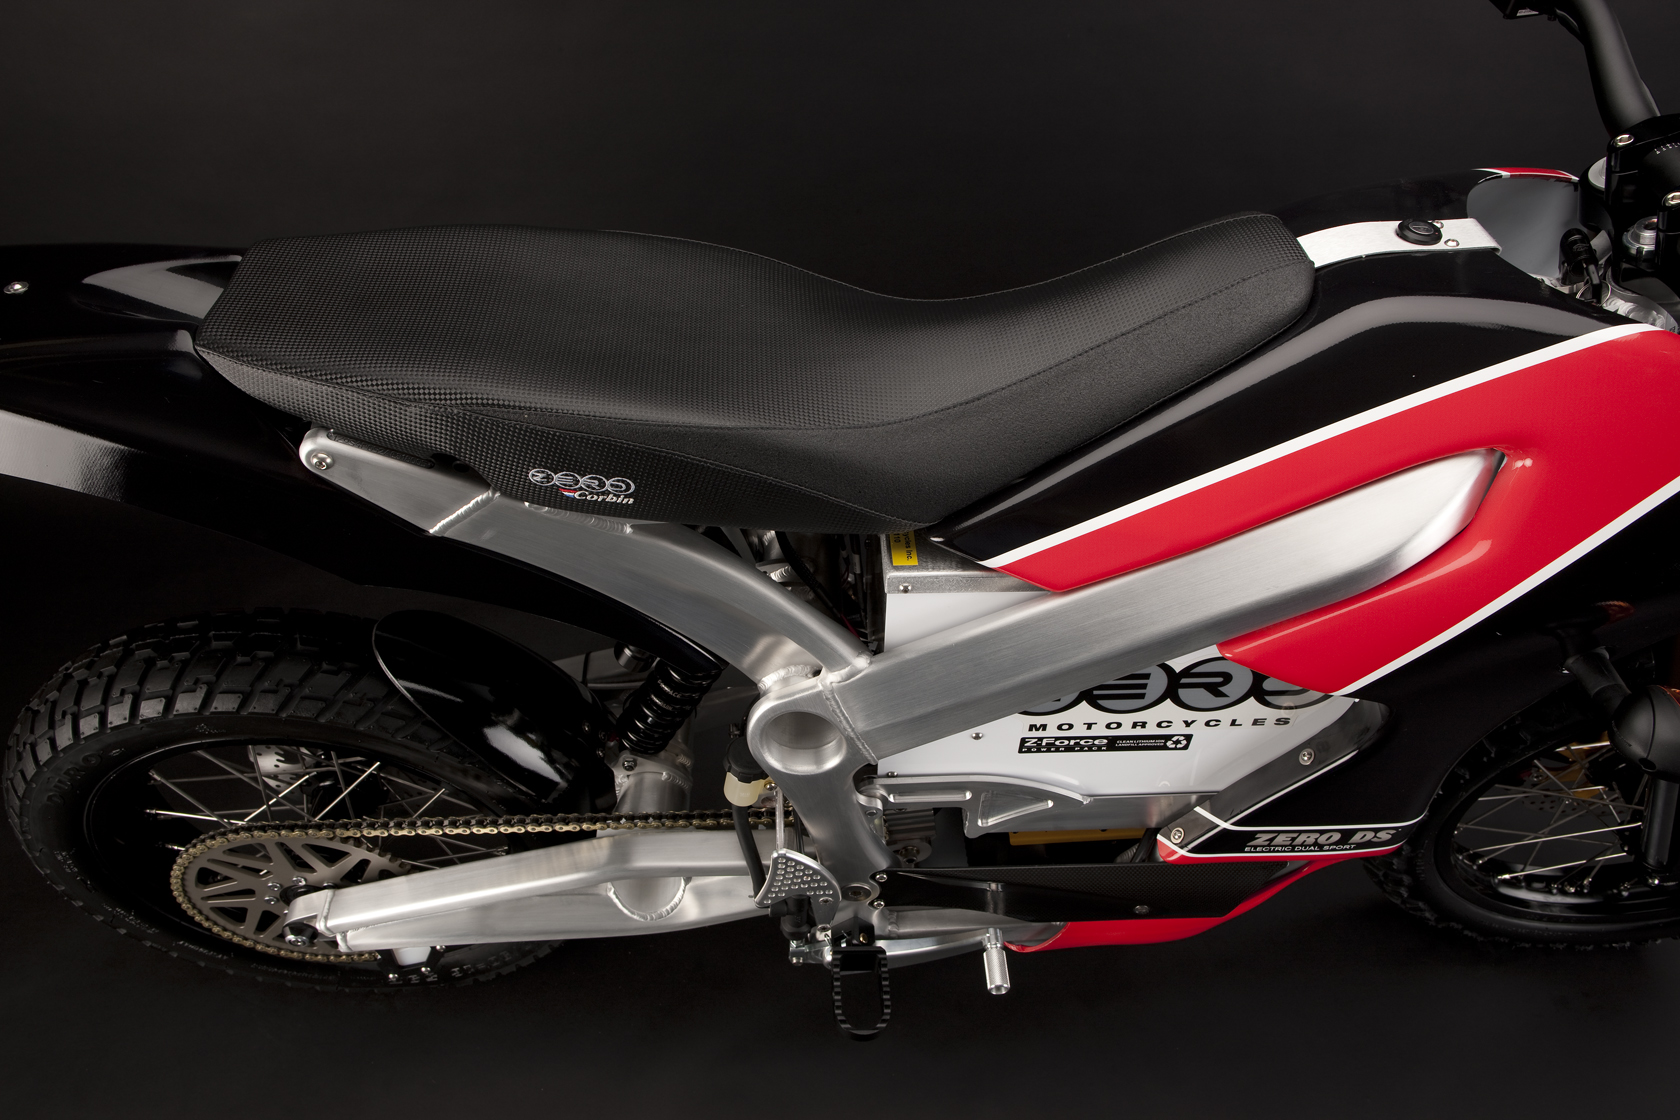 2010 Zero DS Electric Motorcycle: Seat